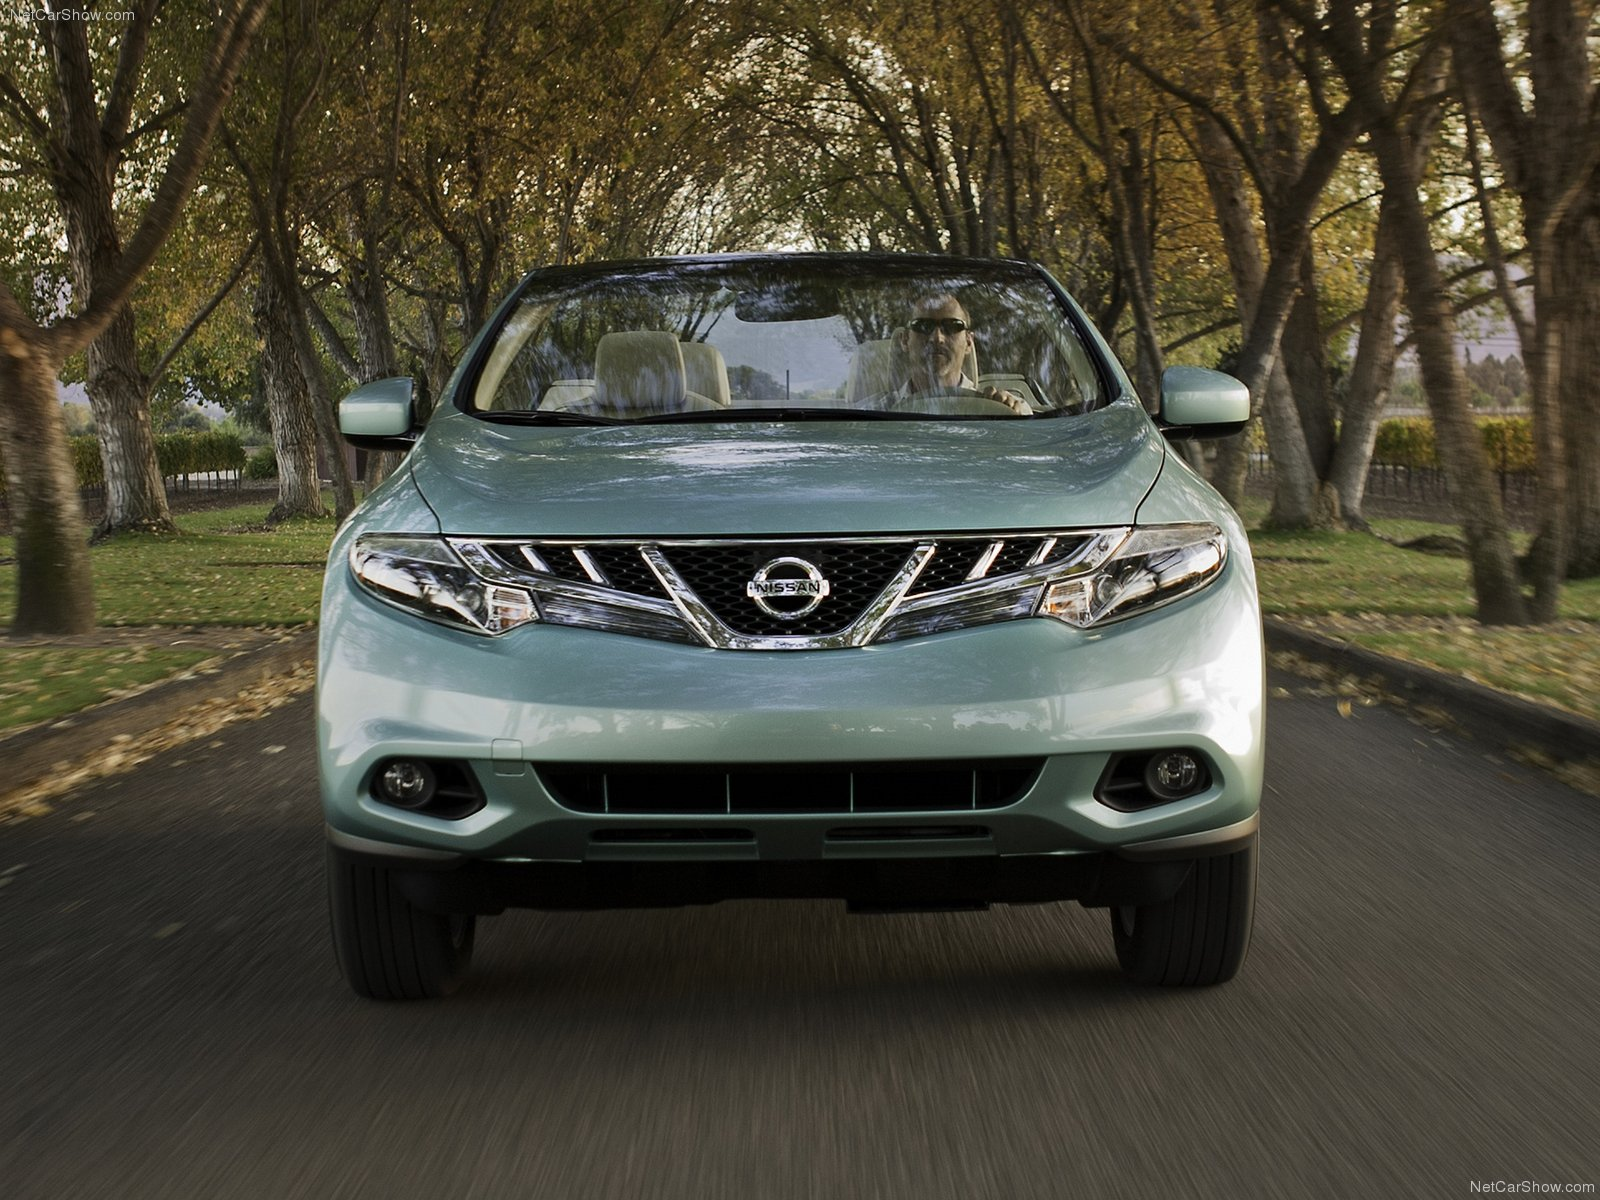 Nissan Murano CrossCabriolet photo #77023